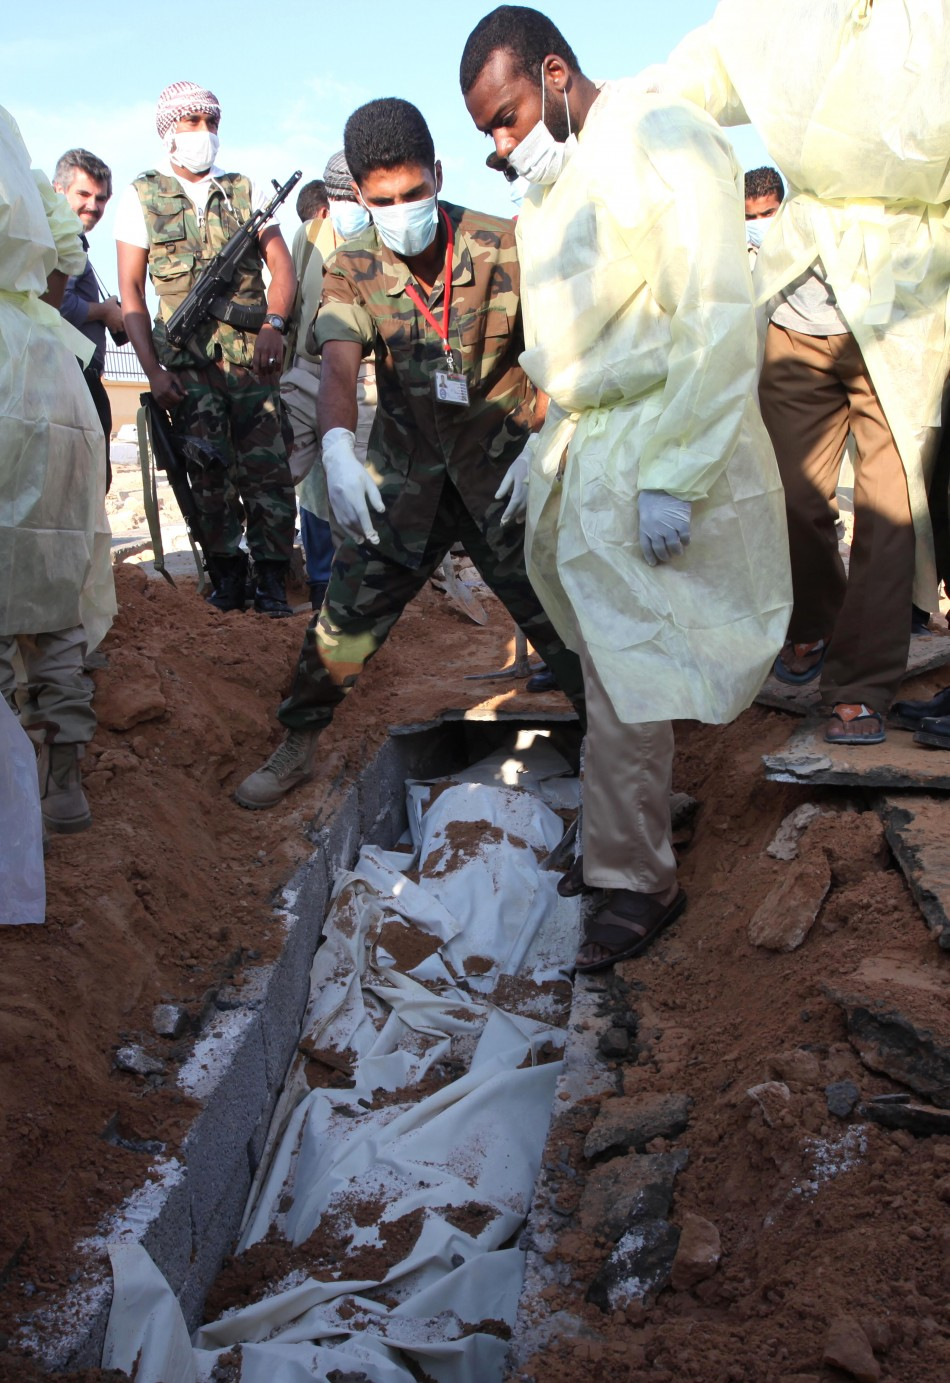 Medical and militia officials in Tripoli exhume two corpses from a site they identified as a mass grave